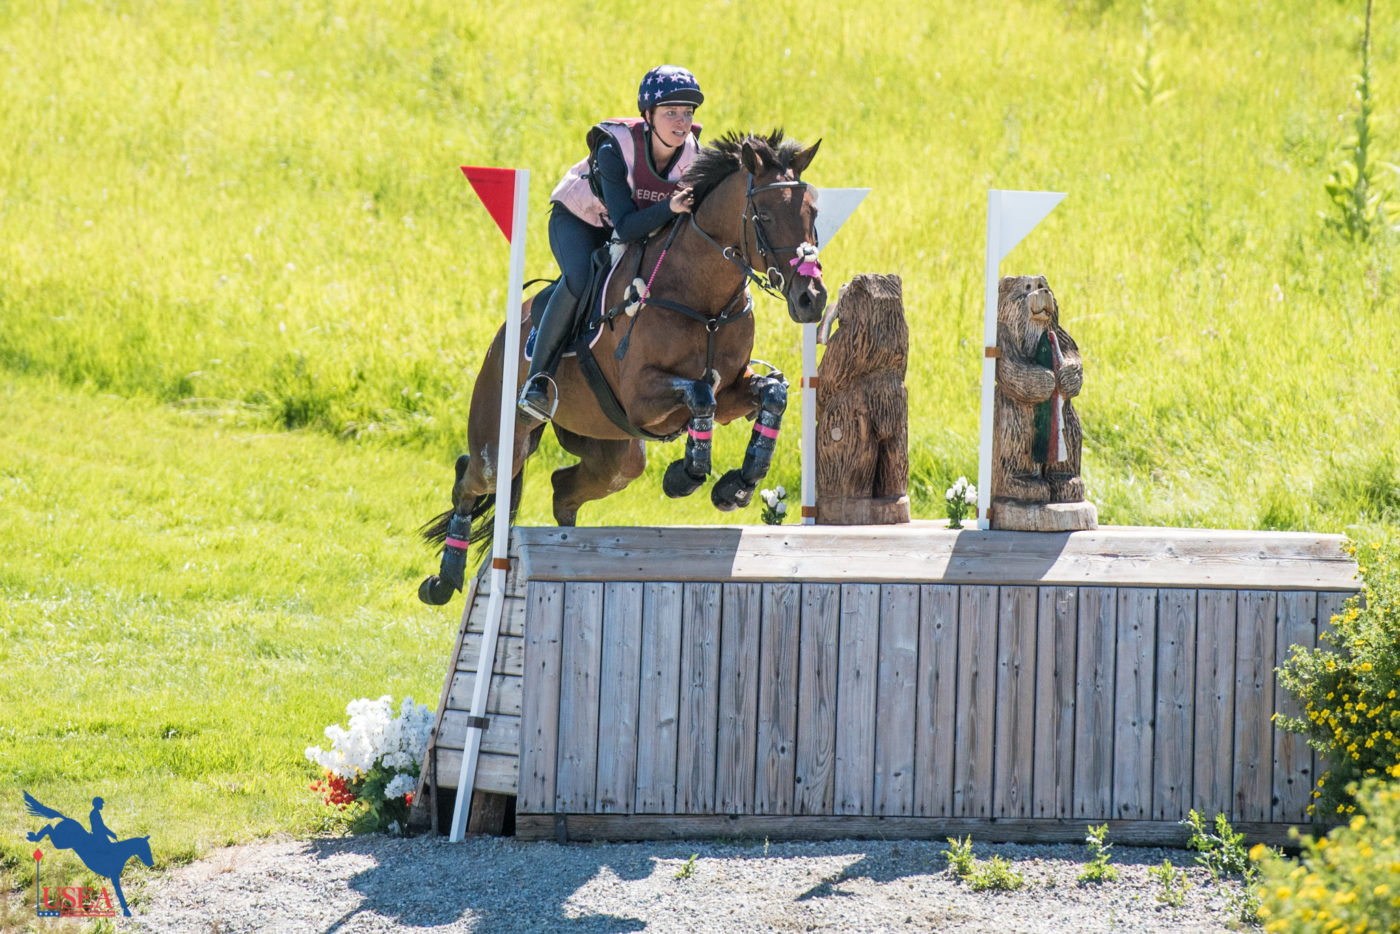 CIC3* - 5th - Madeline Backus and P.S. Arianna